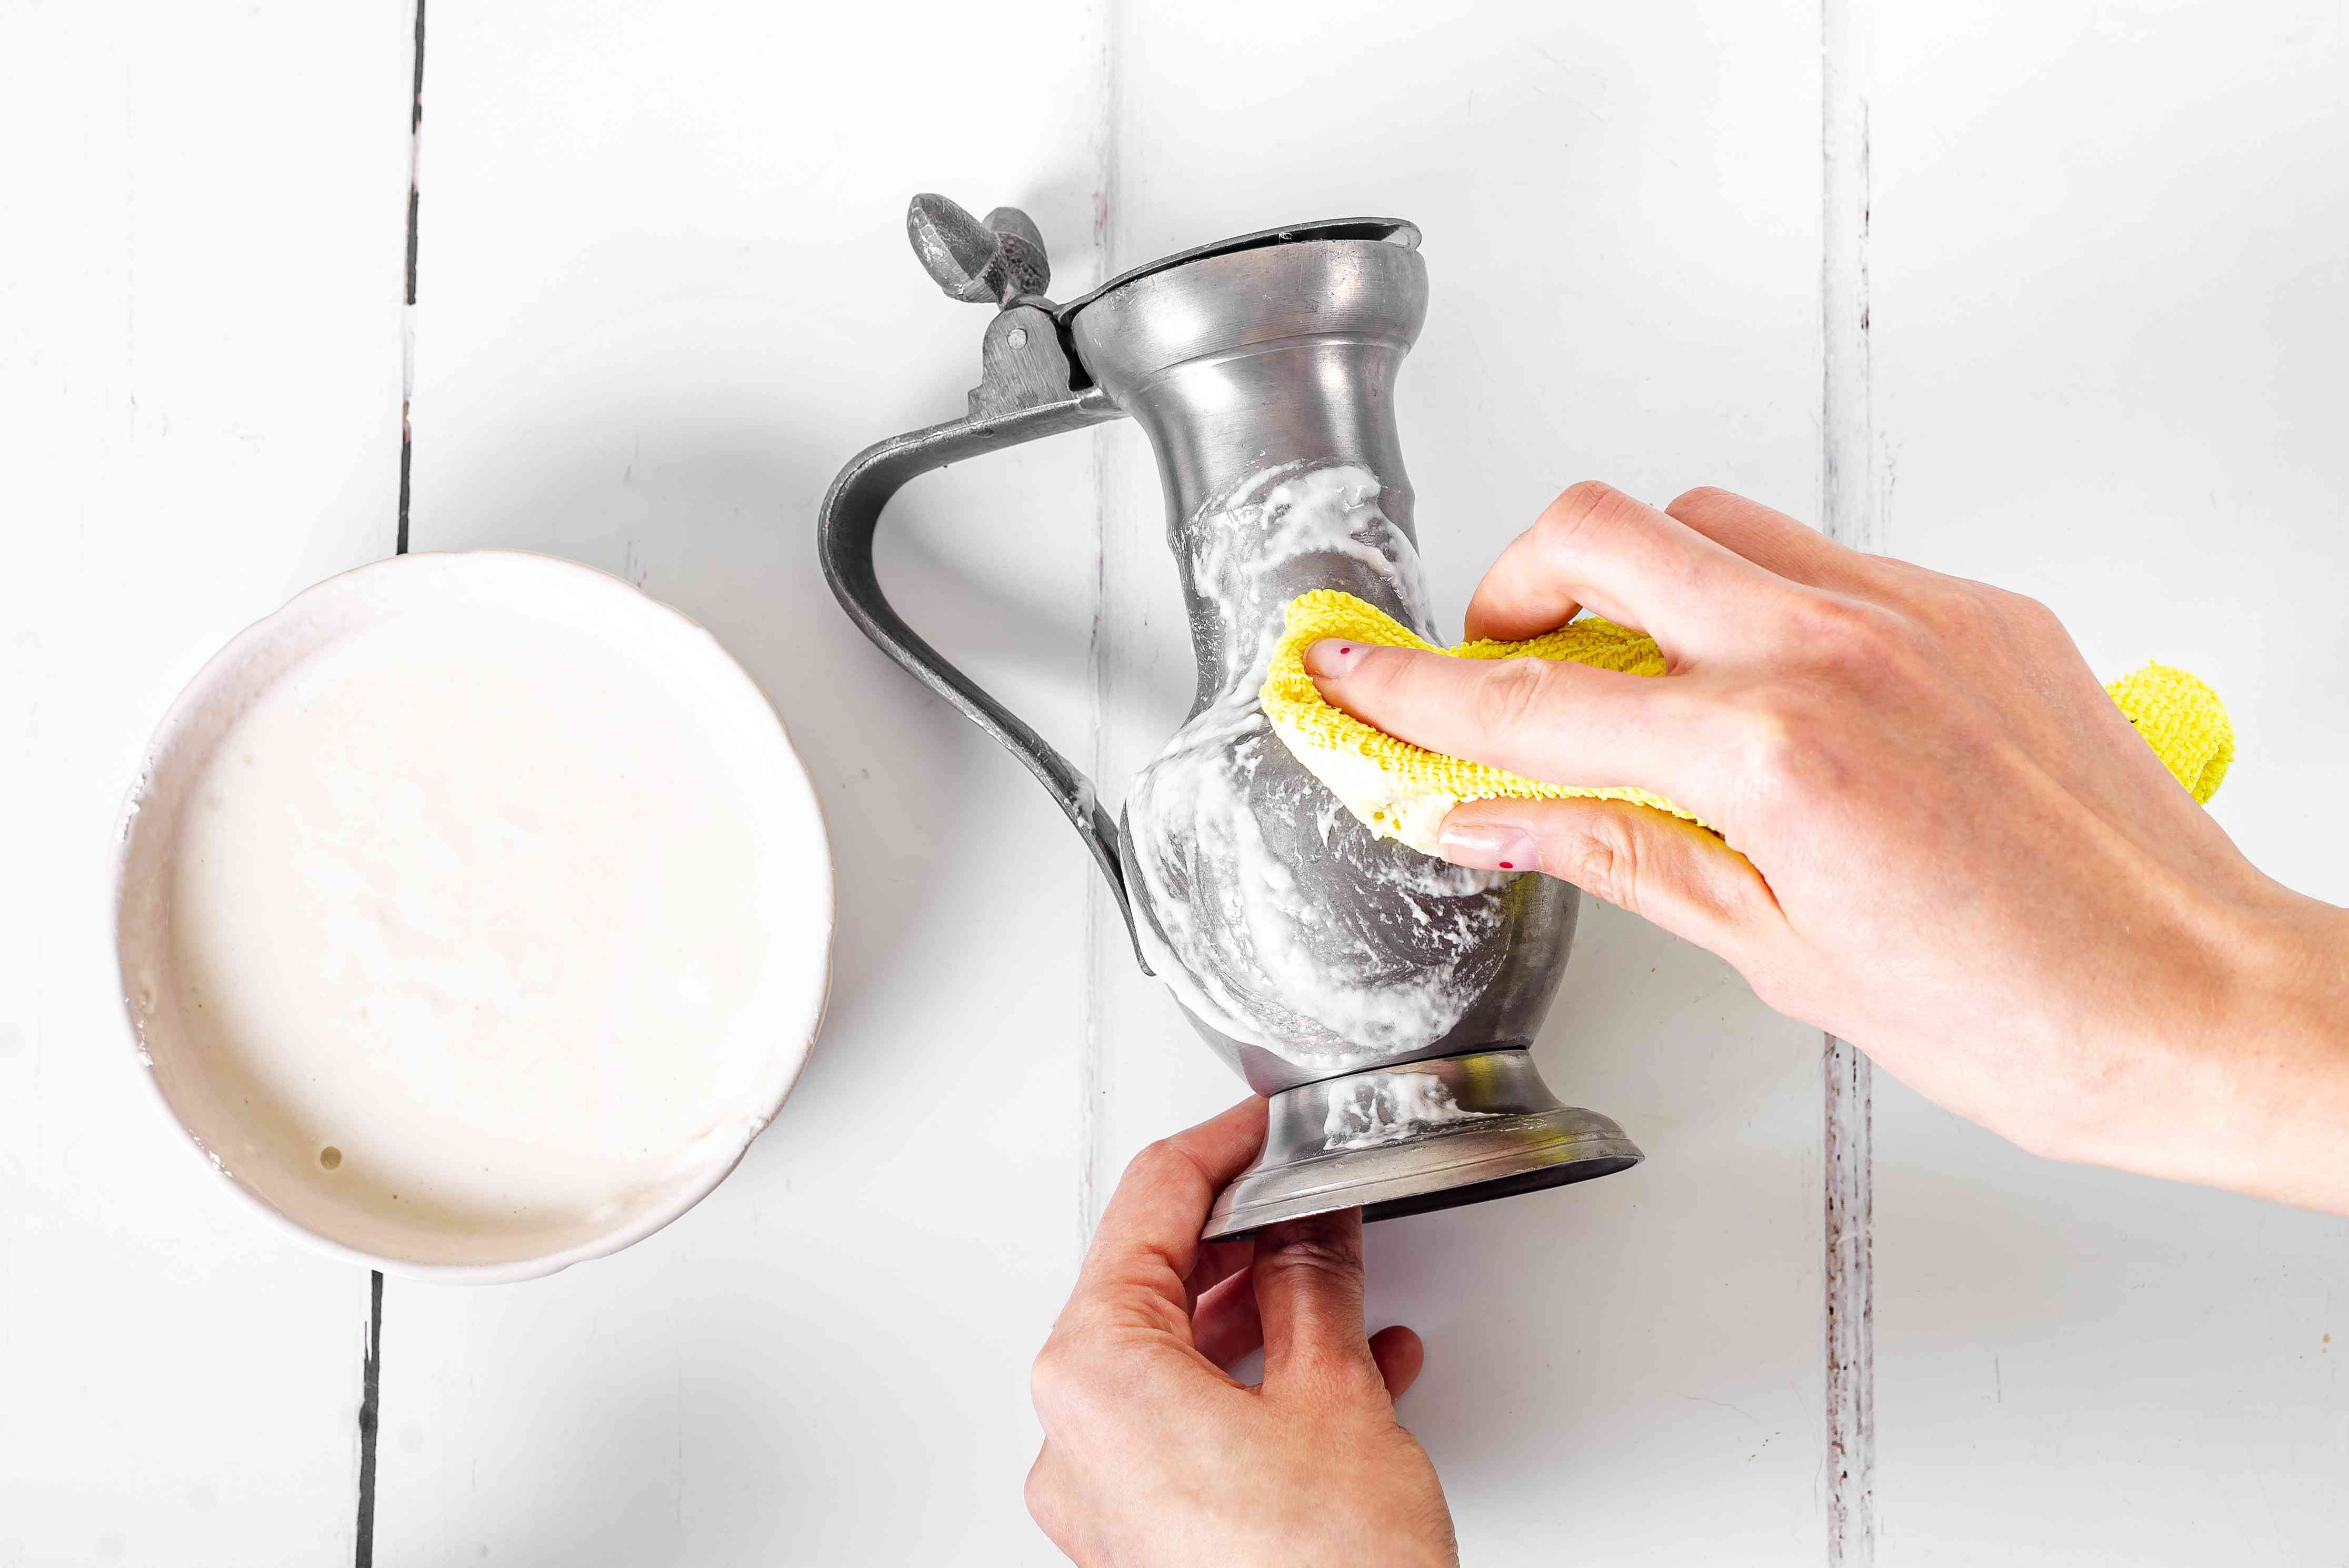 Pewter dispenser cleaned with vinegar and flour cleaning paste with yellow cloth